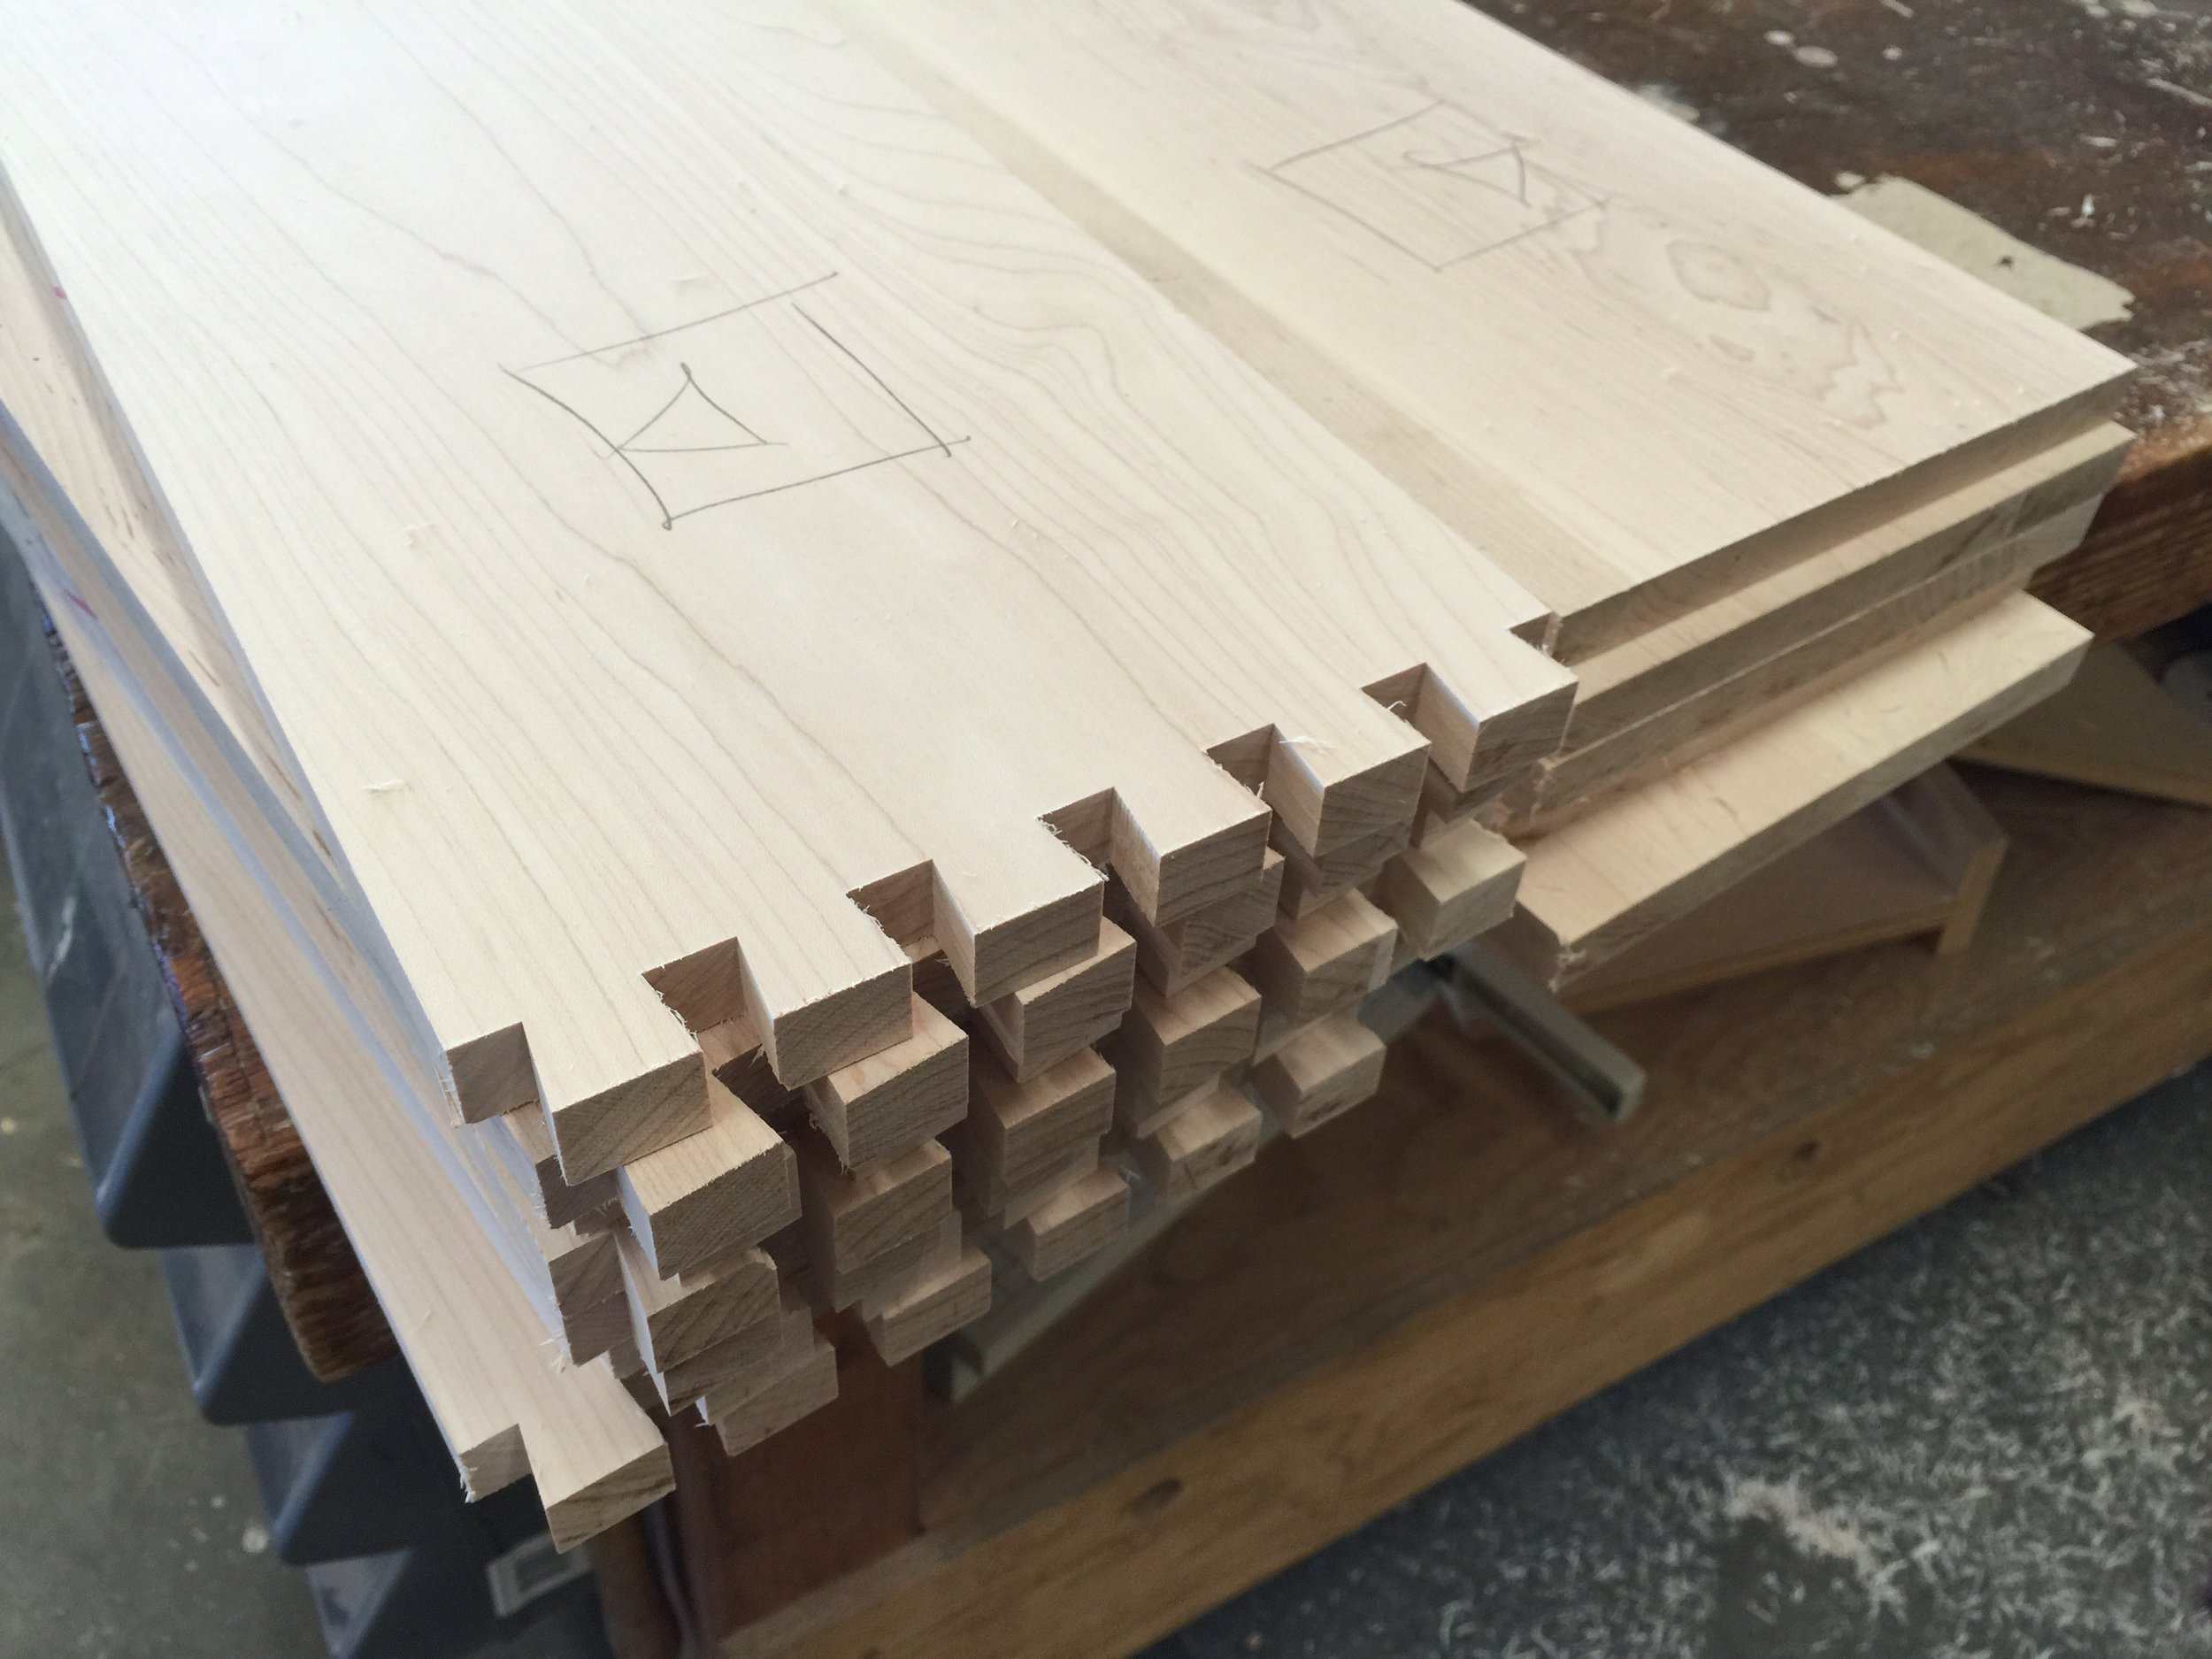 Dovetail drawer parts.